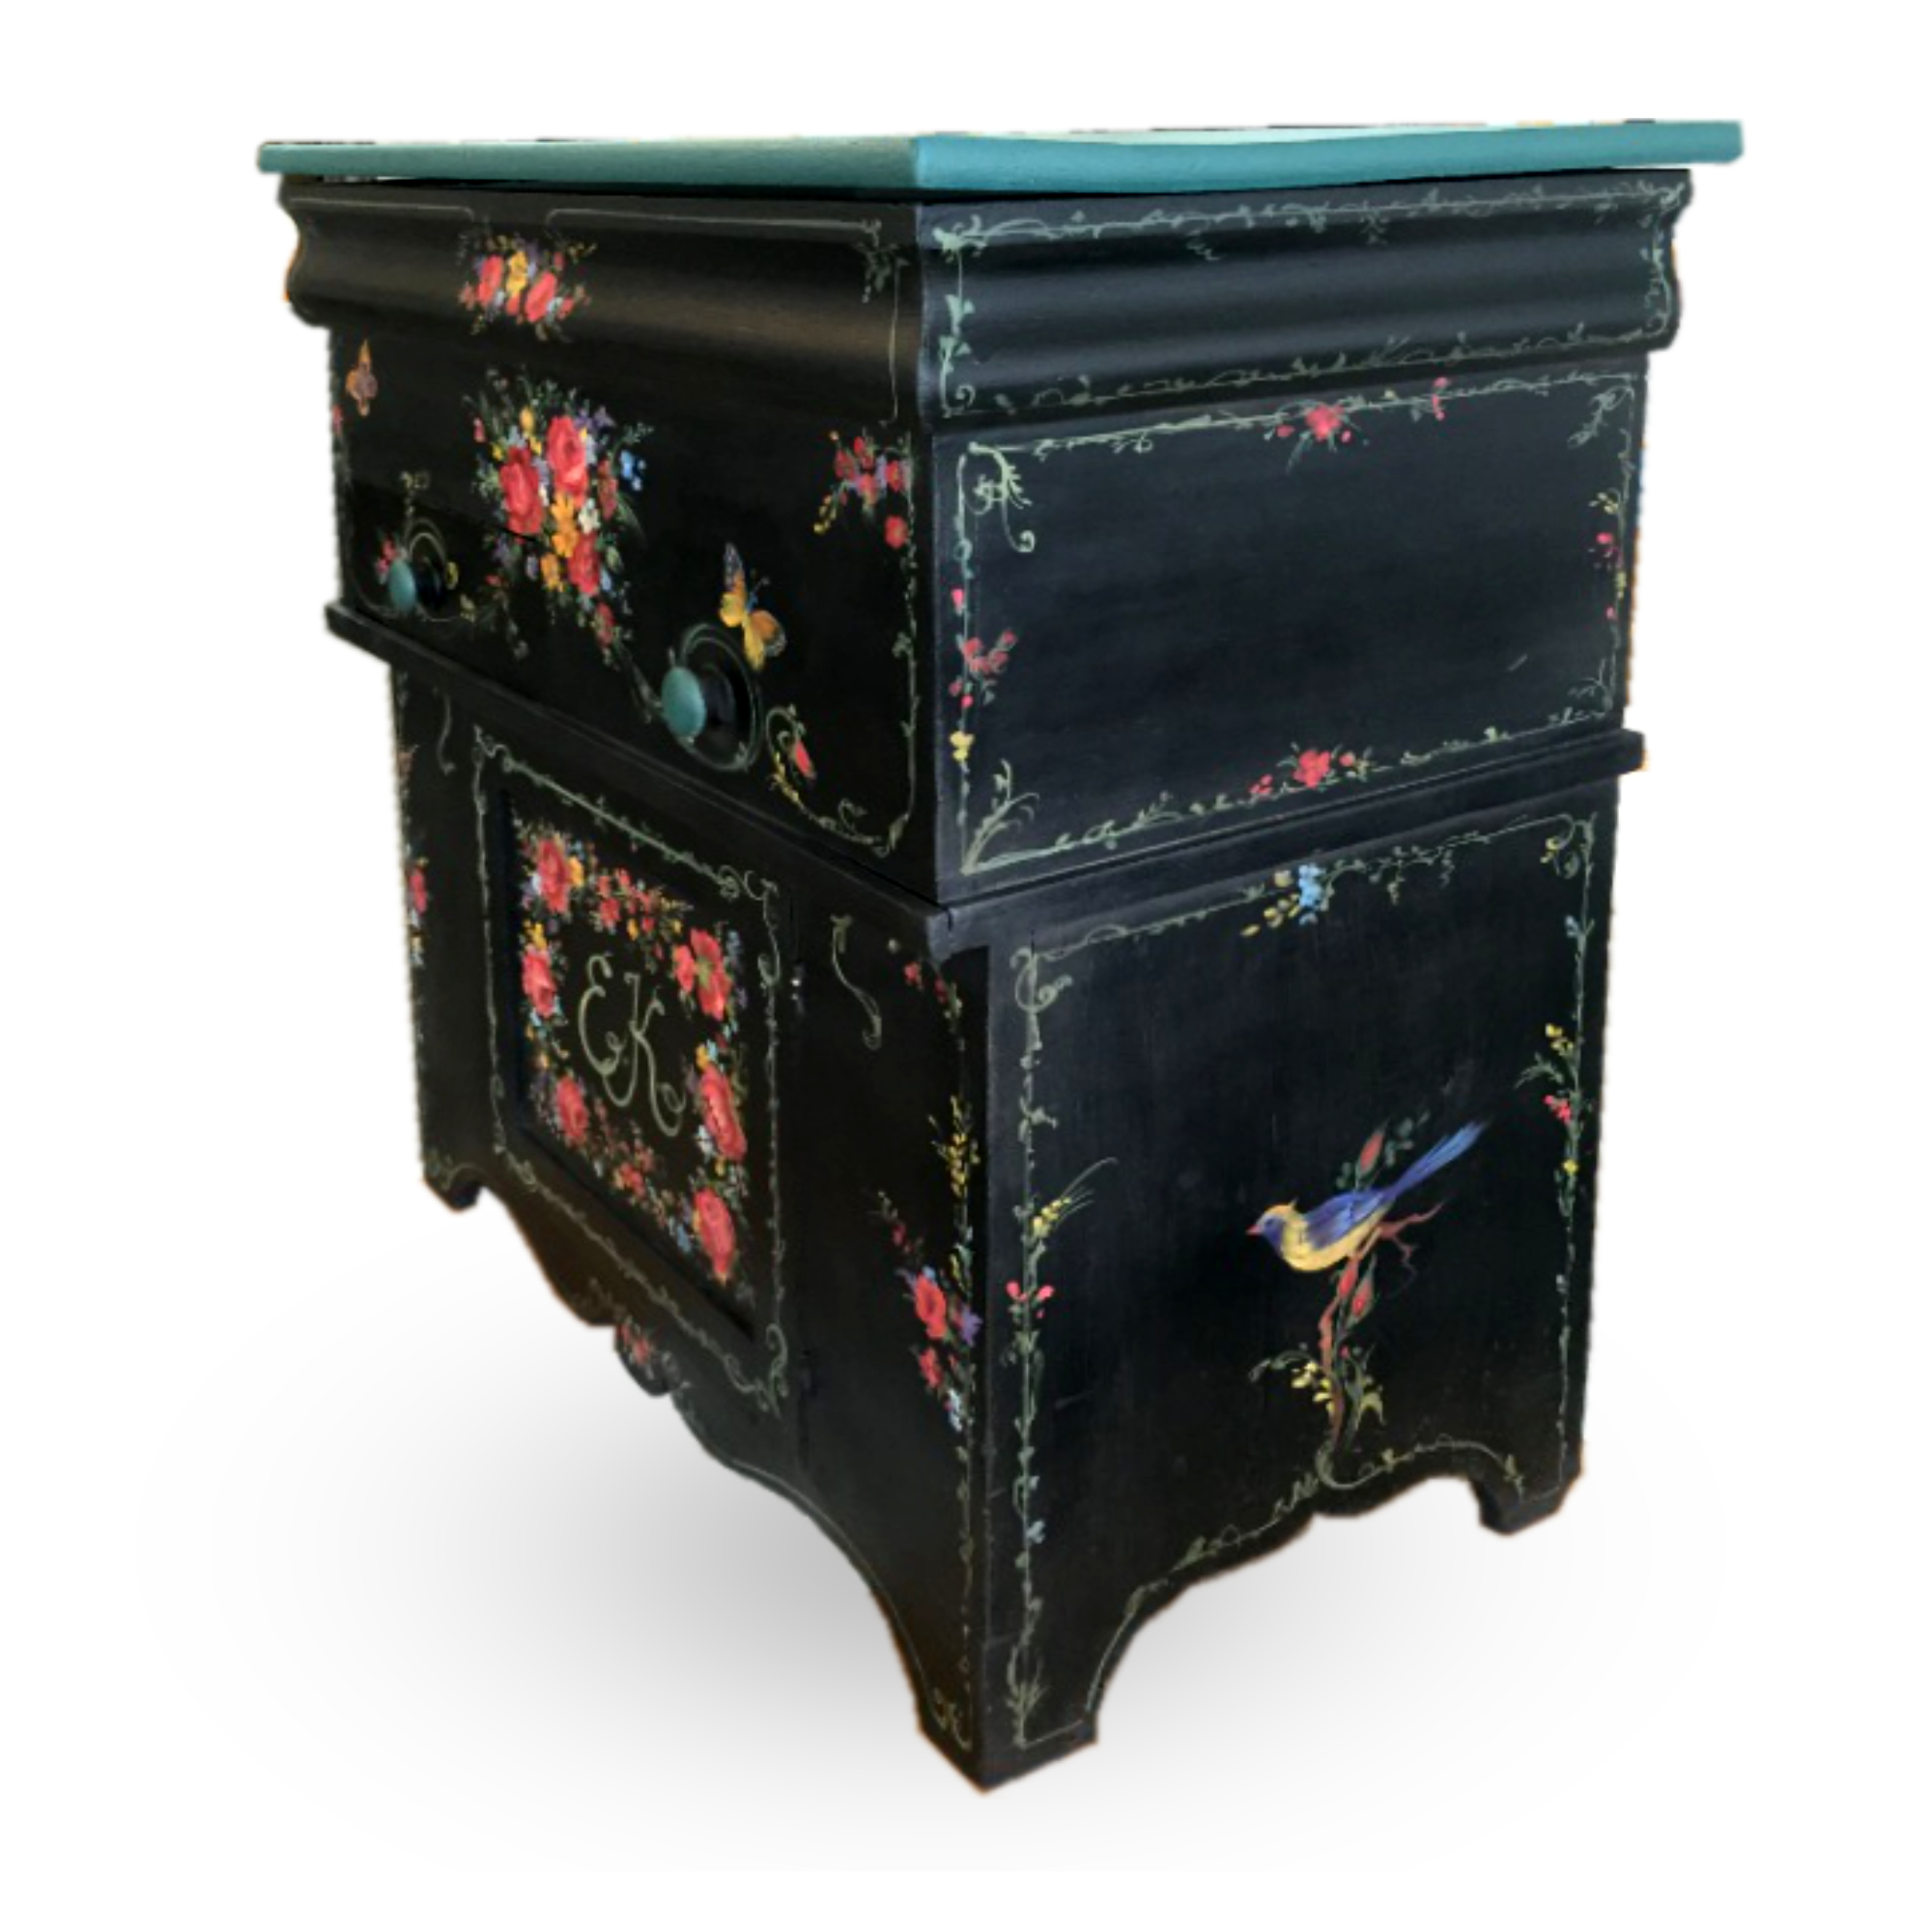 Painted-Chest-2.jpg